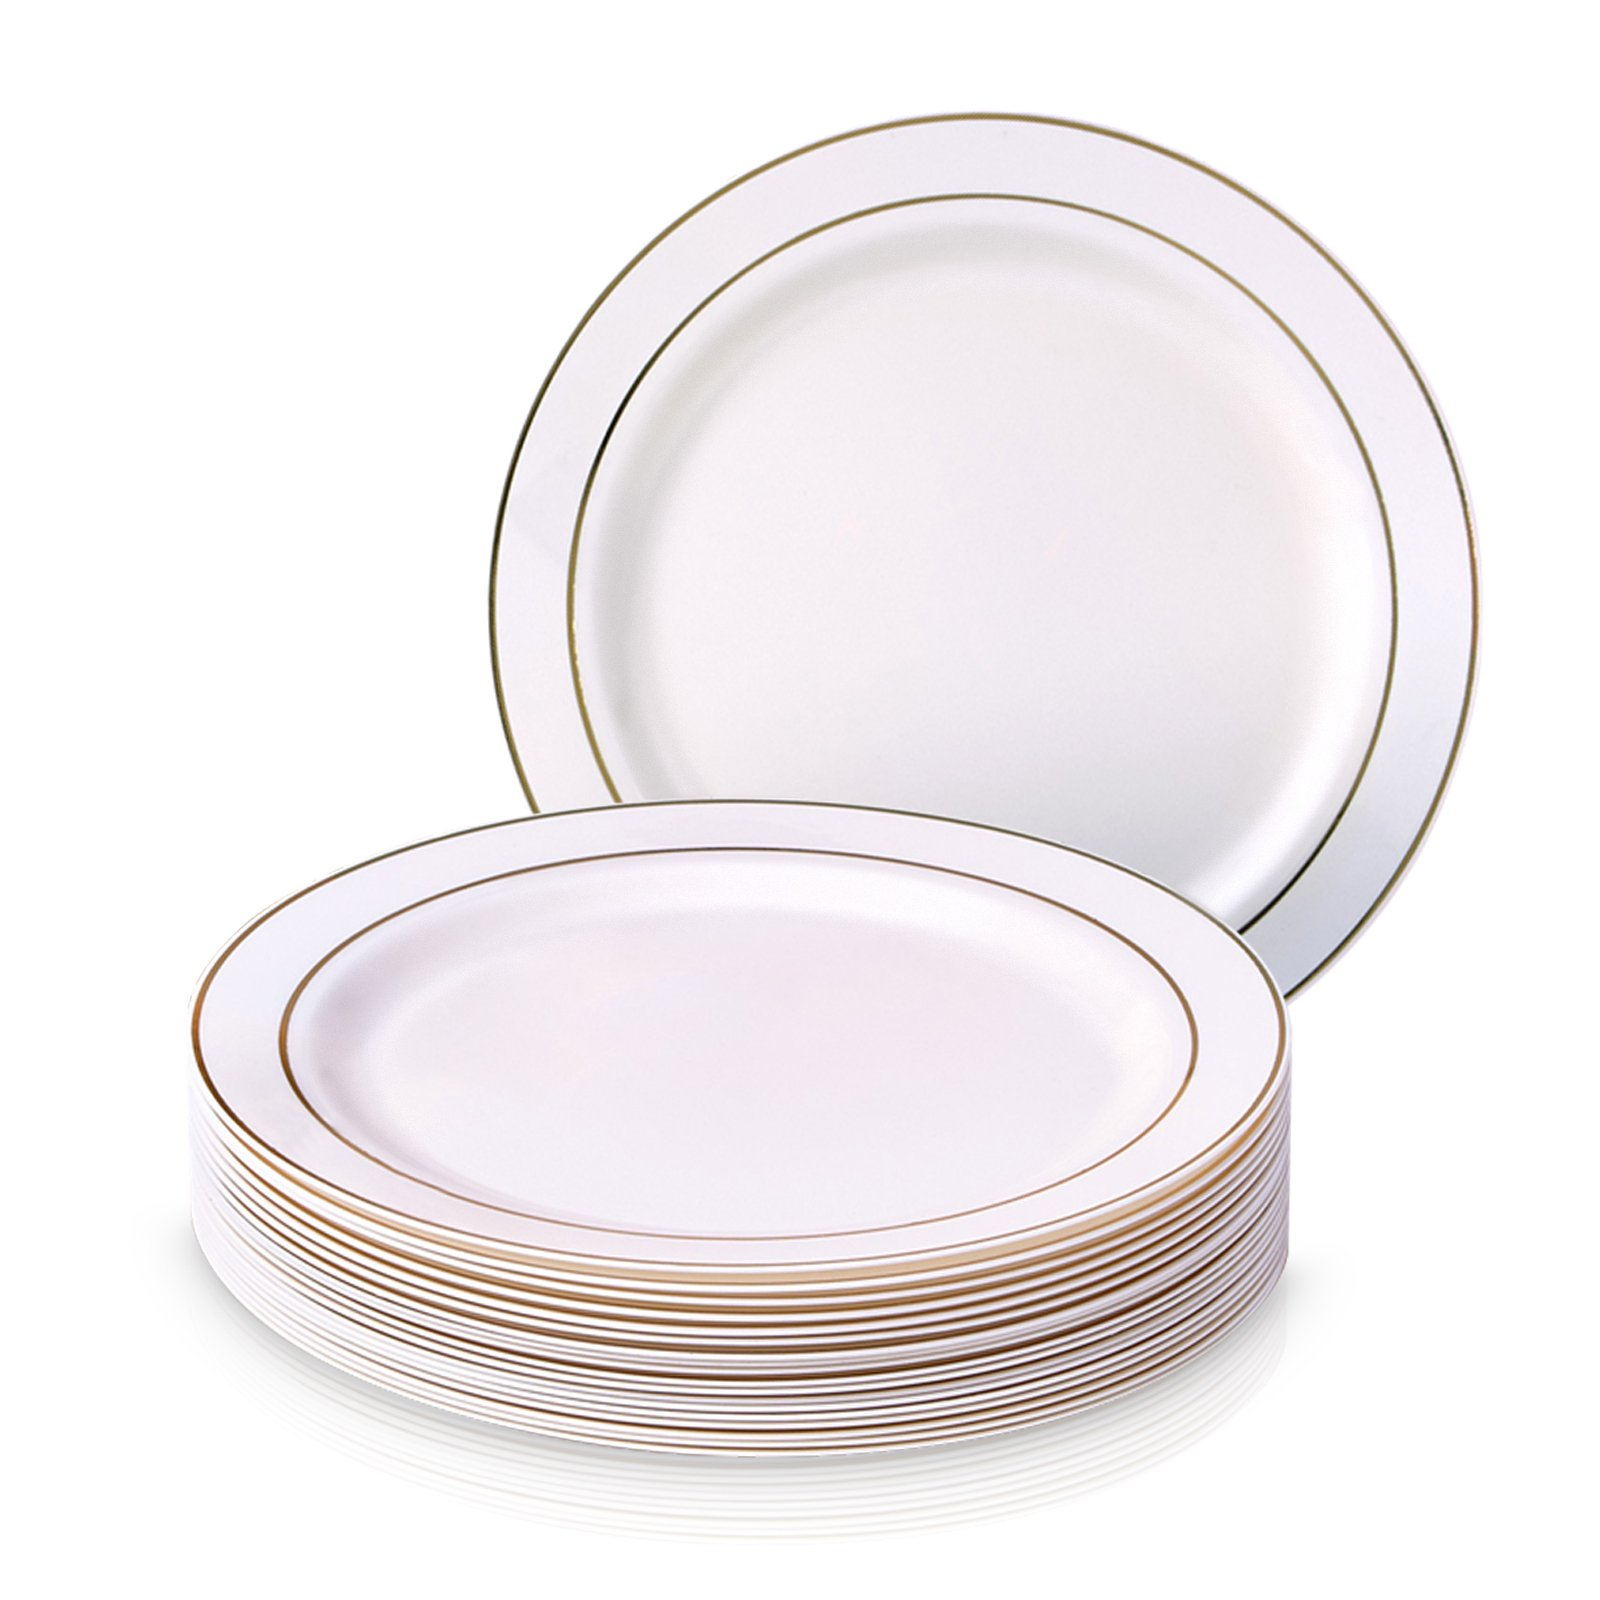 PARTY DISPOSABLE 20 PC DINNERWARE SET | 20 Side Plates | Heavyweight Plastic Dishes | Elegant Fine China Look | for Upscale Wedding and Dining (Golden Glare Collection– Ivory/Gold Border | 7.5 Inch)